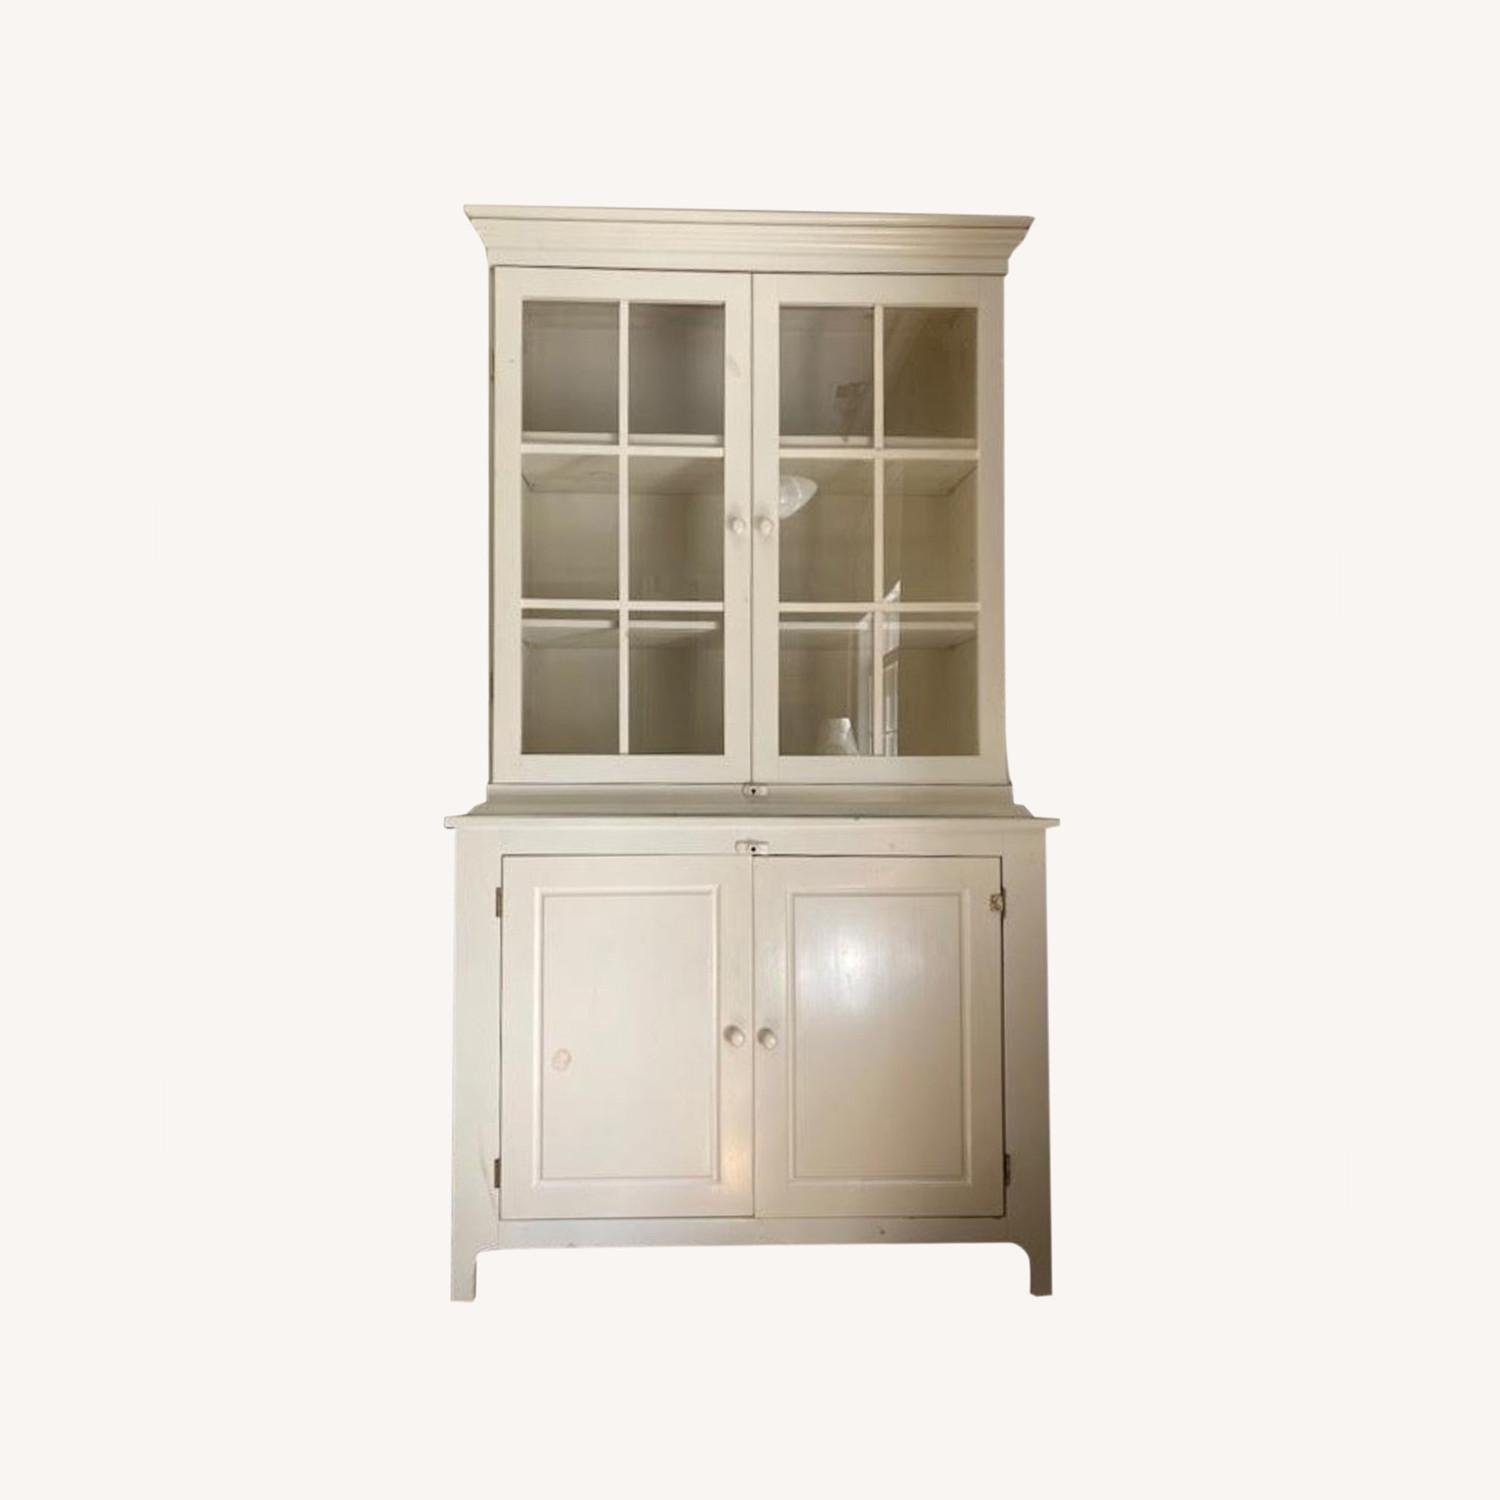 Hutch - Glass Front and Solid Doors with Shelving - image-0